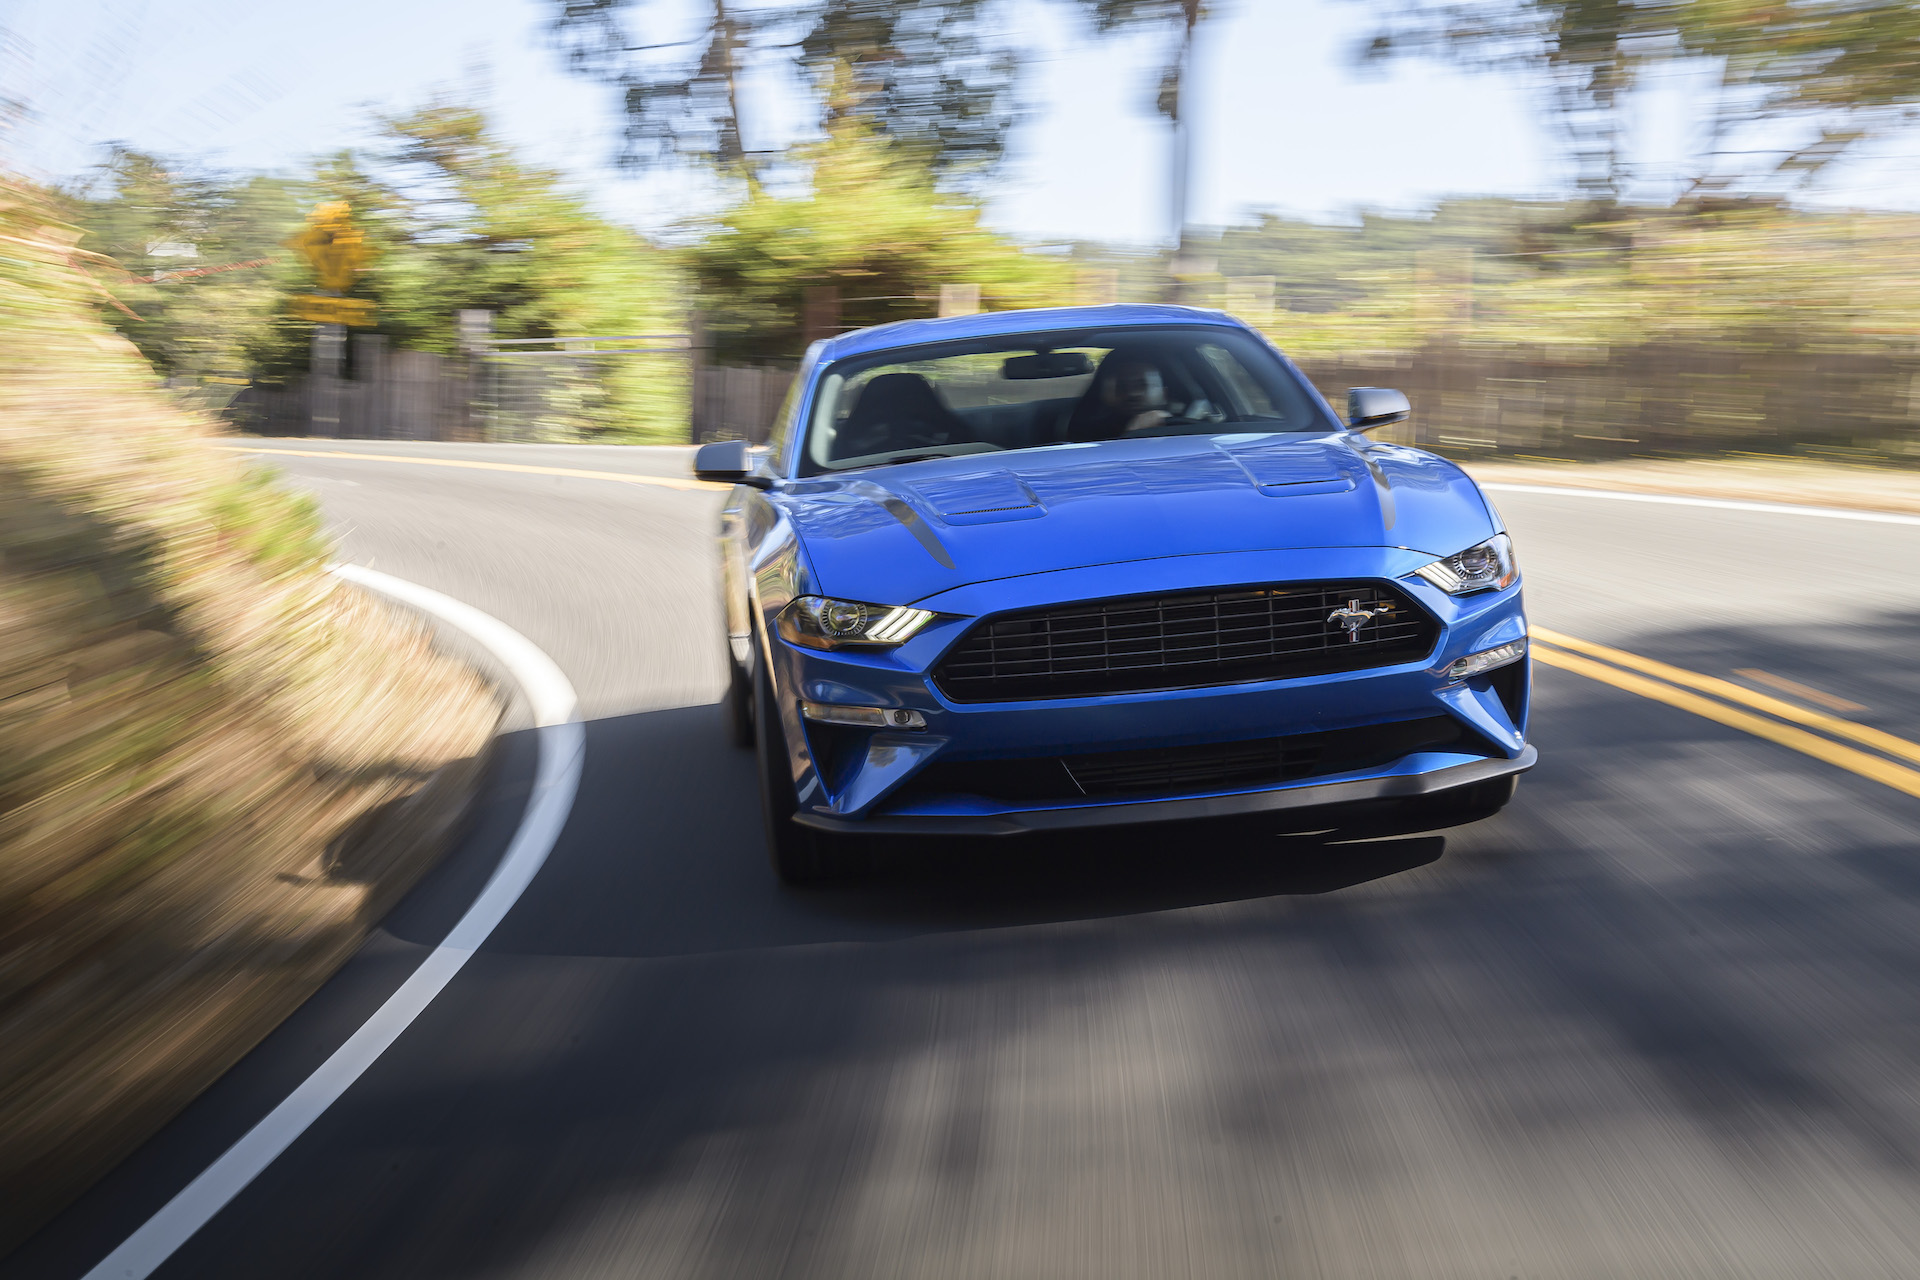 Mustang is best-selling sports car in 2020, outsells Camaro two to one